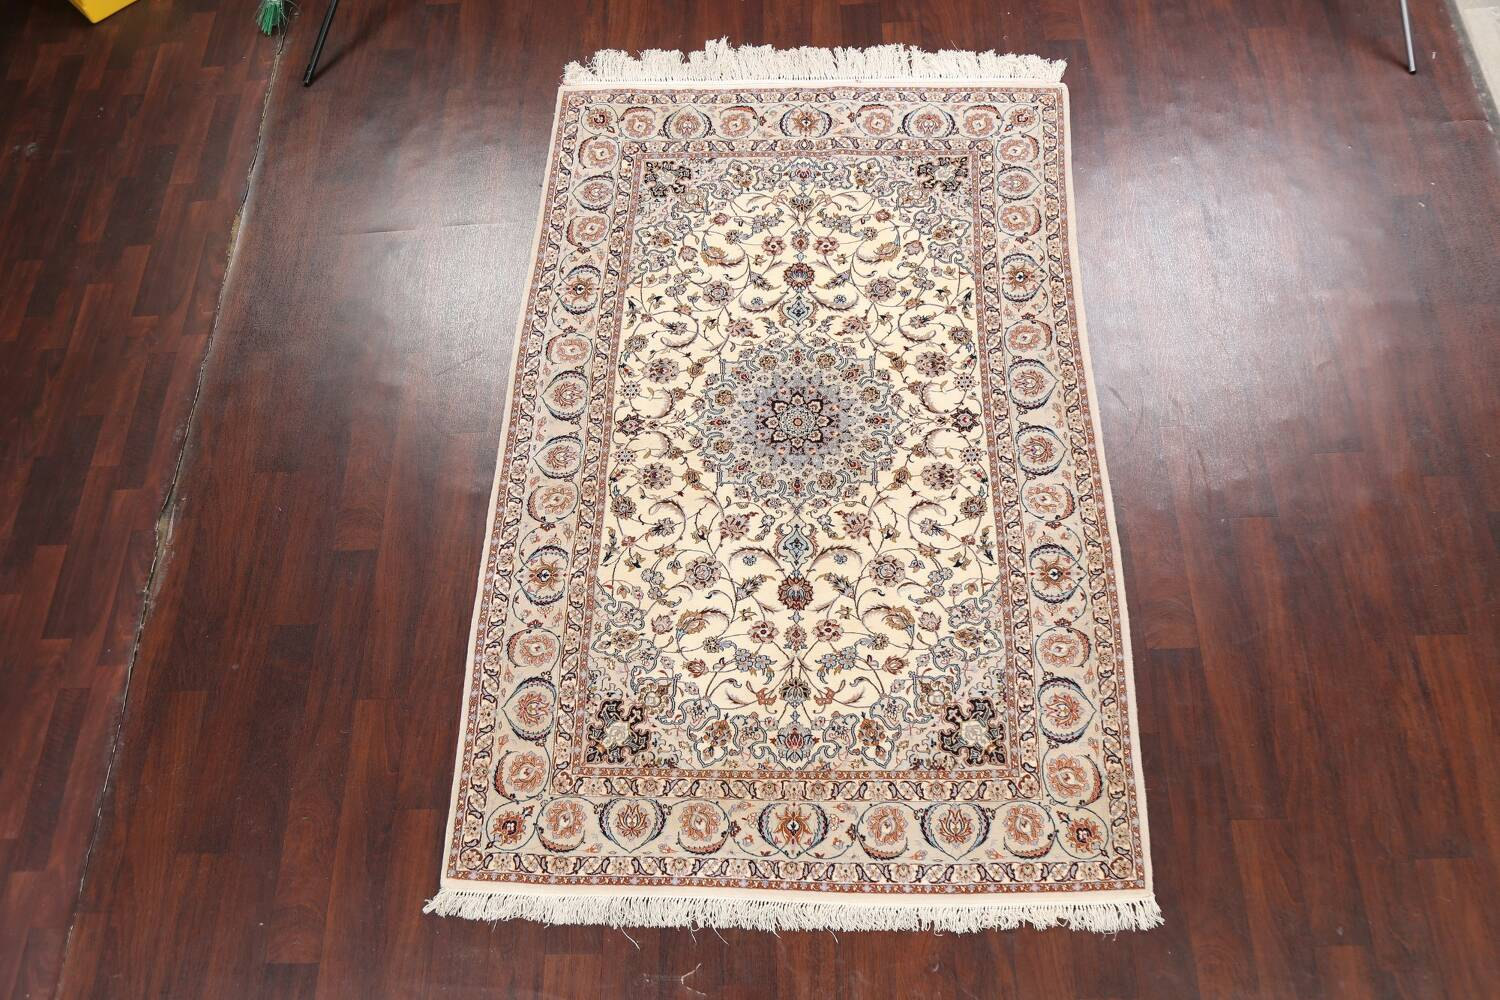 100% Vegetable Dye Floral Isfahan Persian Area Rug 5x8 image 14